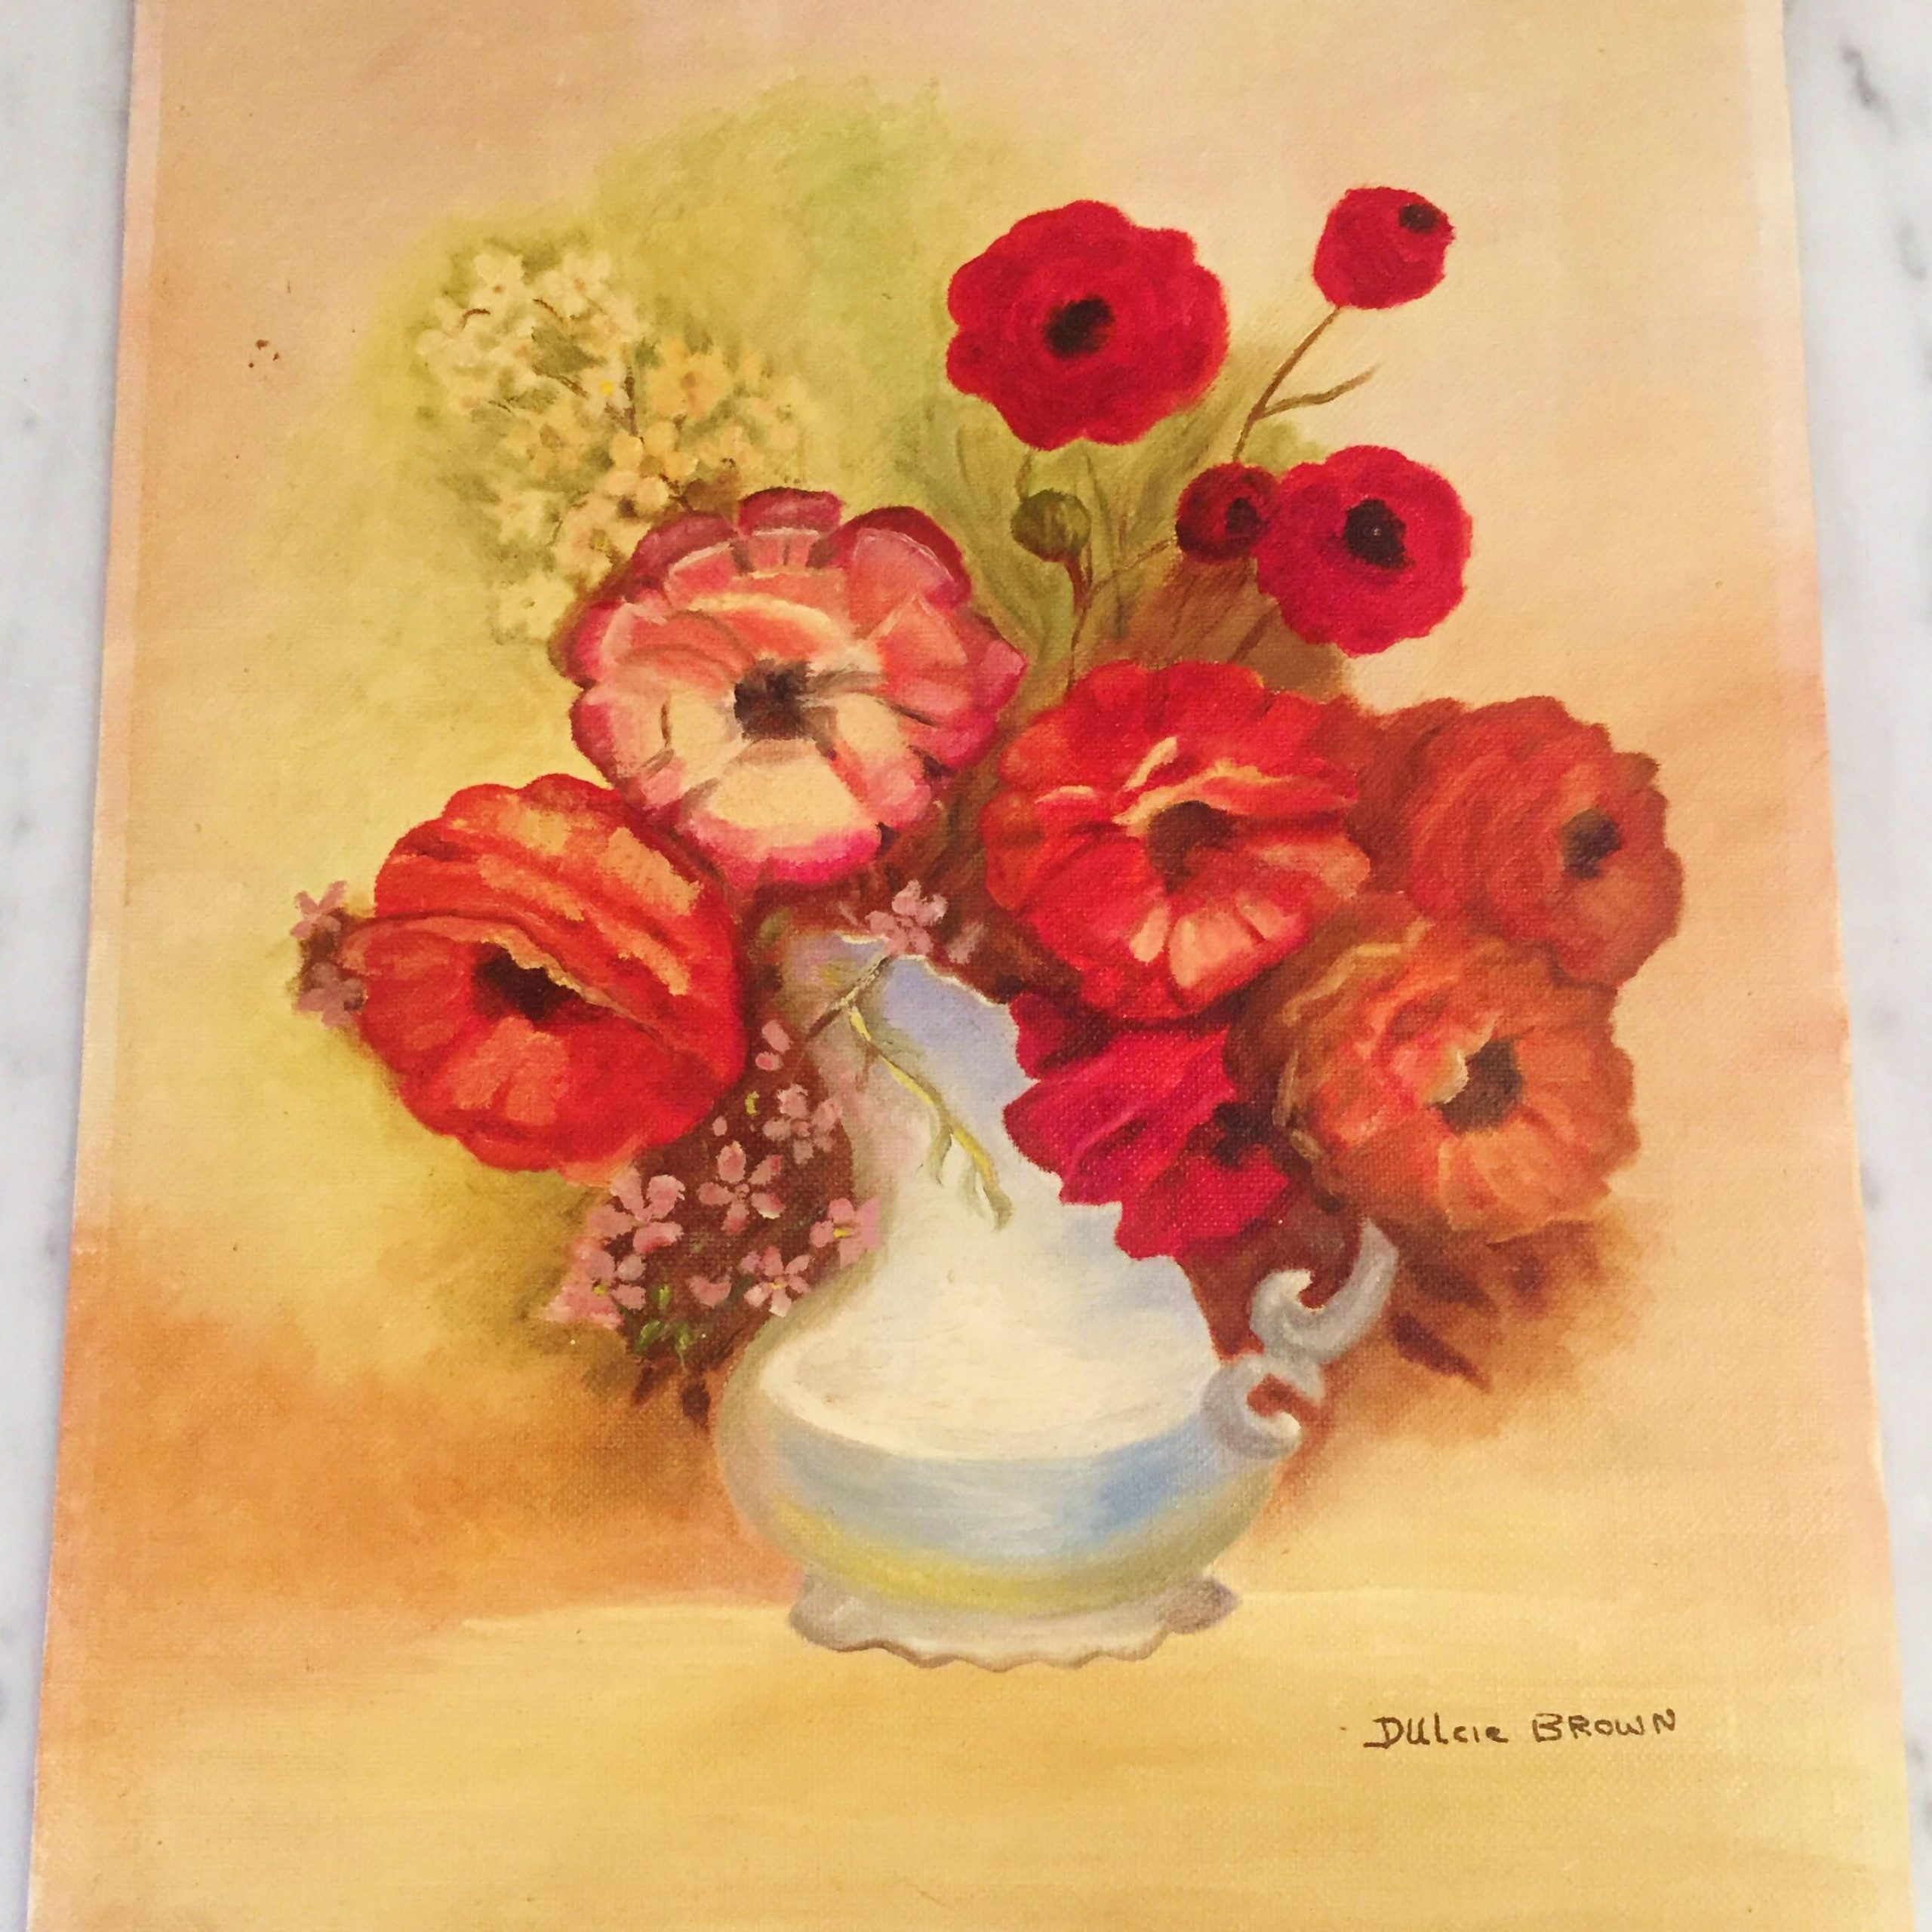 Vintage Poppy Painting, Vintage Floral Art, Poppy Canvas Pertaining To 2018 Blended Fabric Poppy Red Wall Hangings (View 15 of 20)